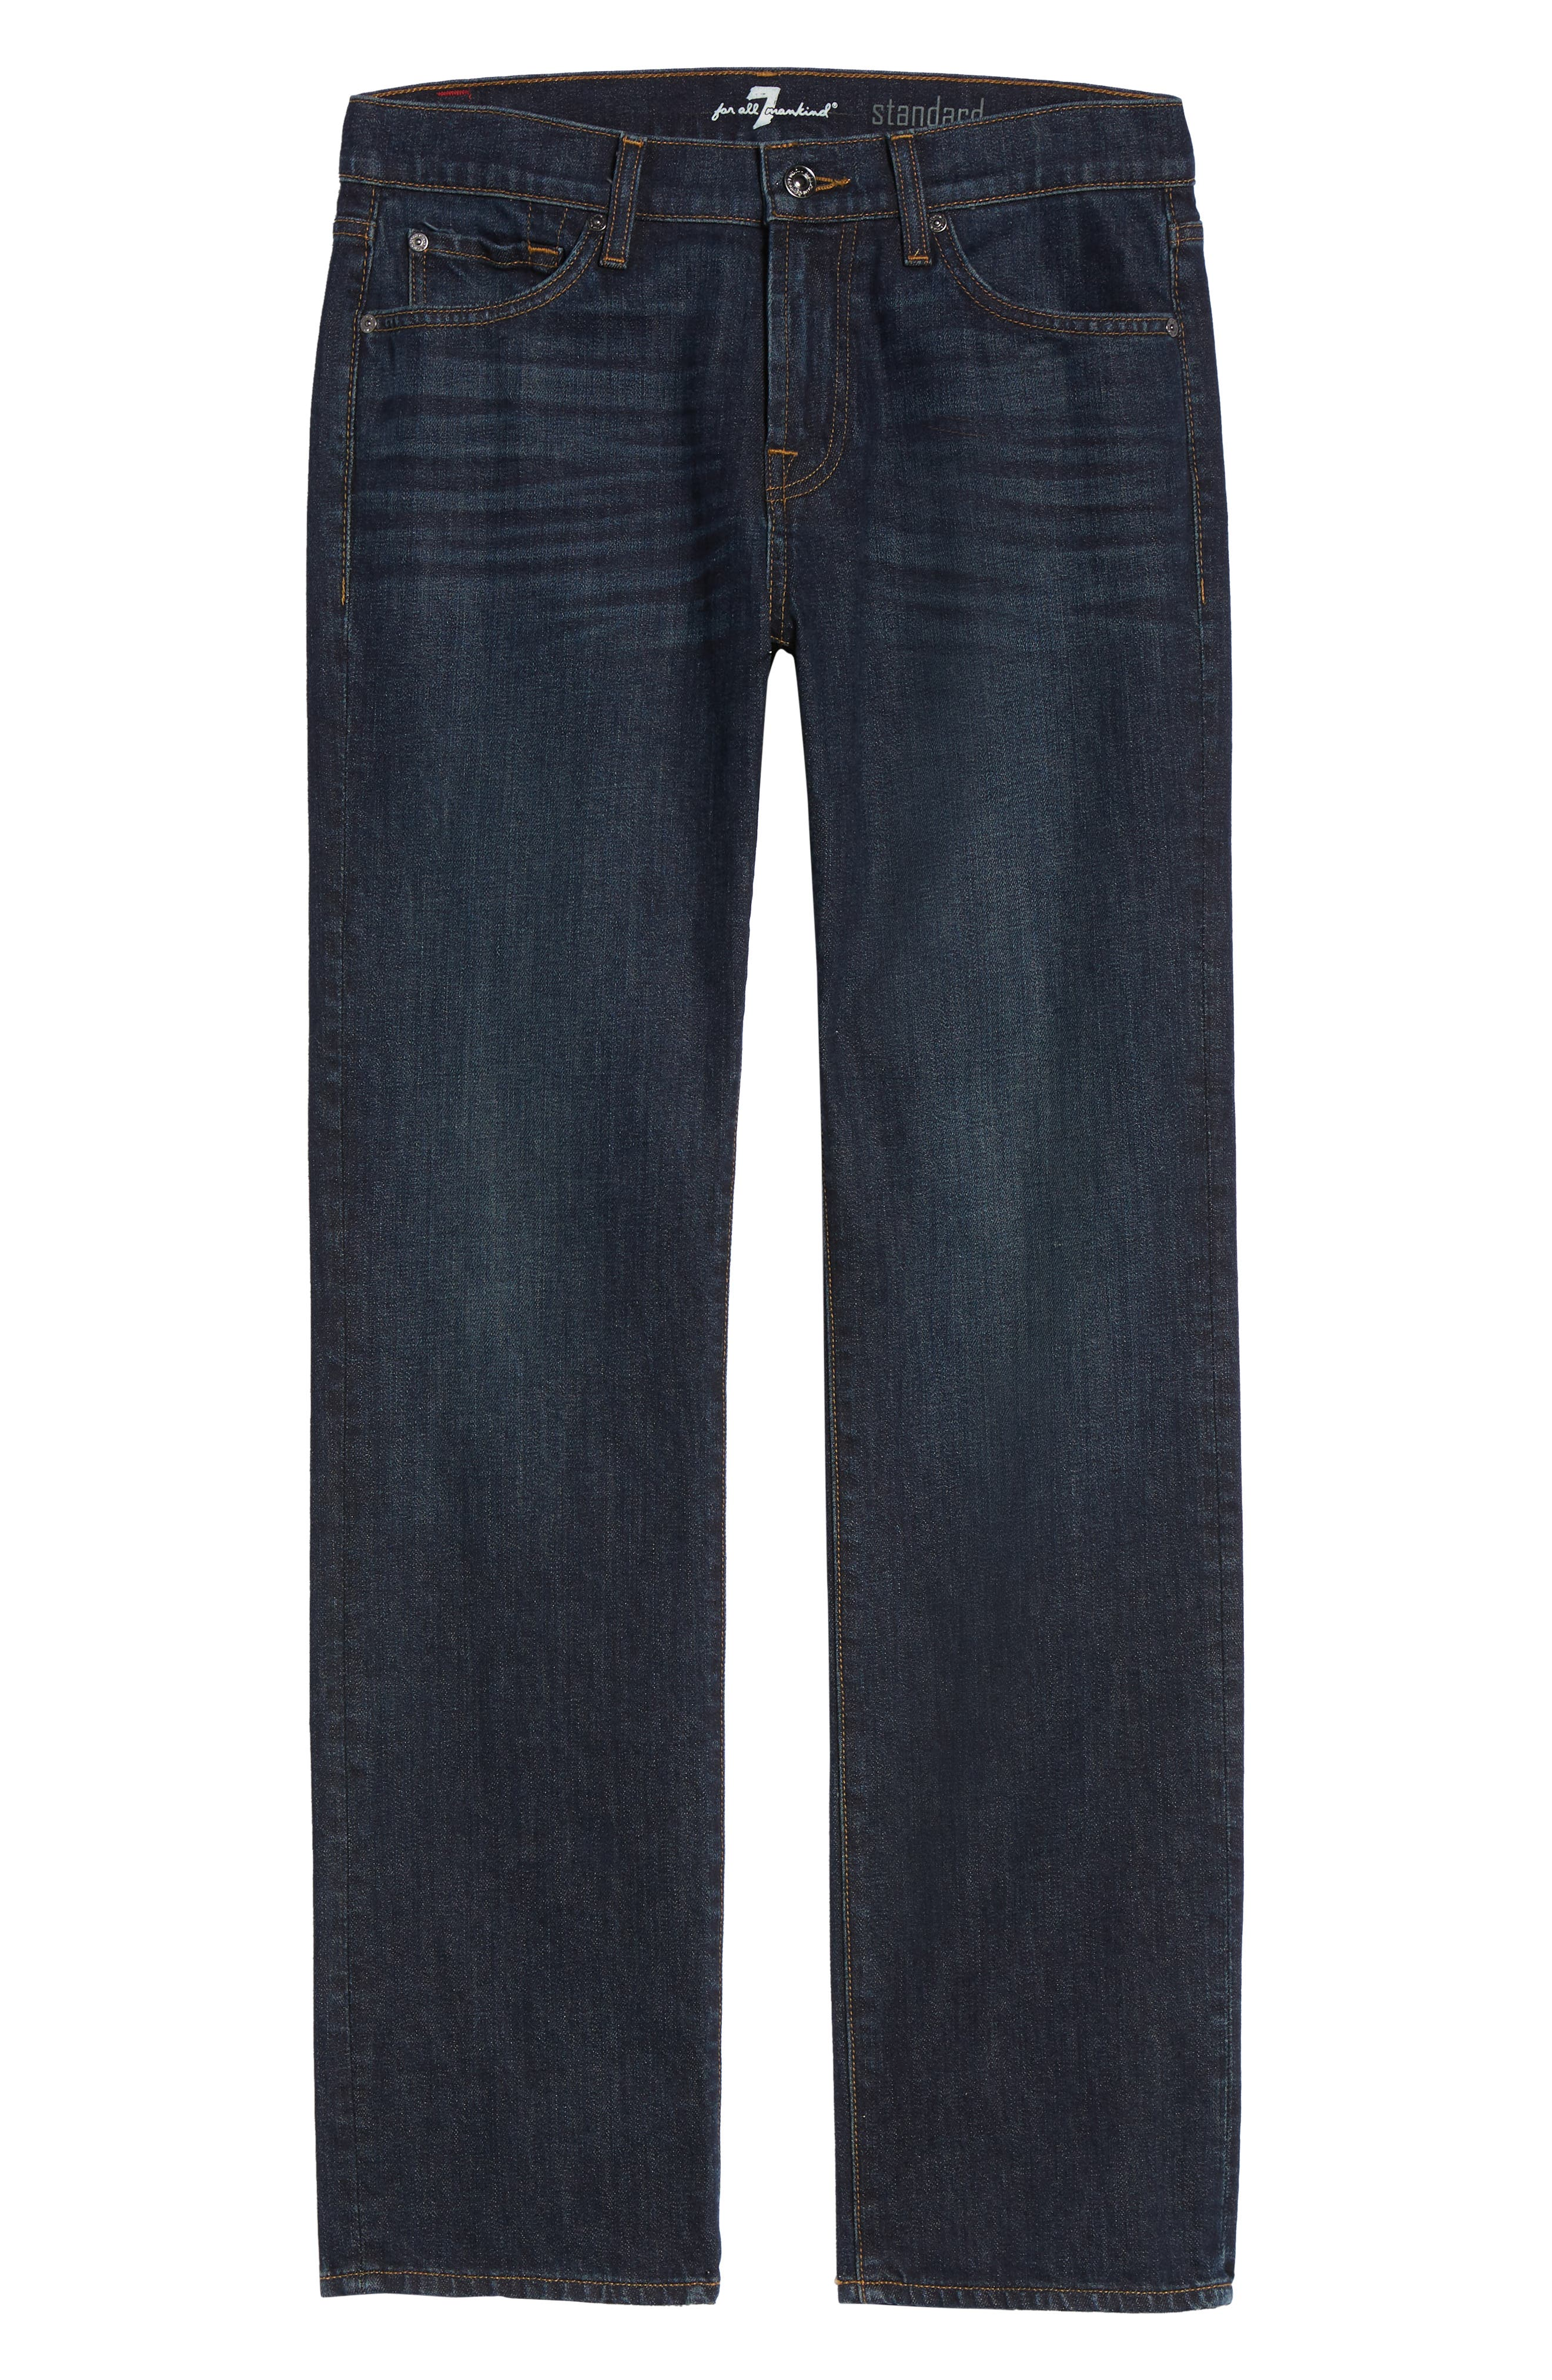 7 FOR ALL MANKIND<SUP>®</SUP>, Standard Straight Leg Jeans, Alternate thumbnail 7, color, ABERDEEN